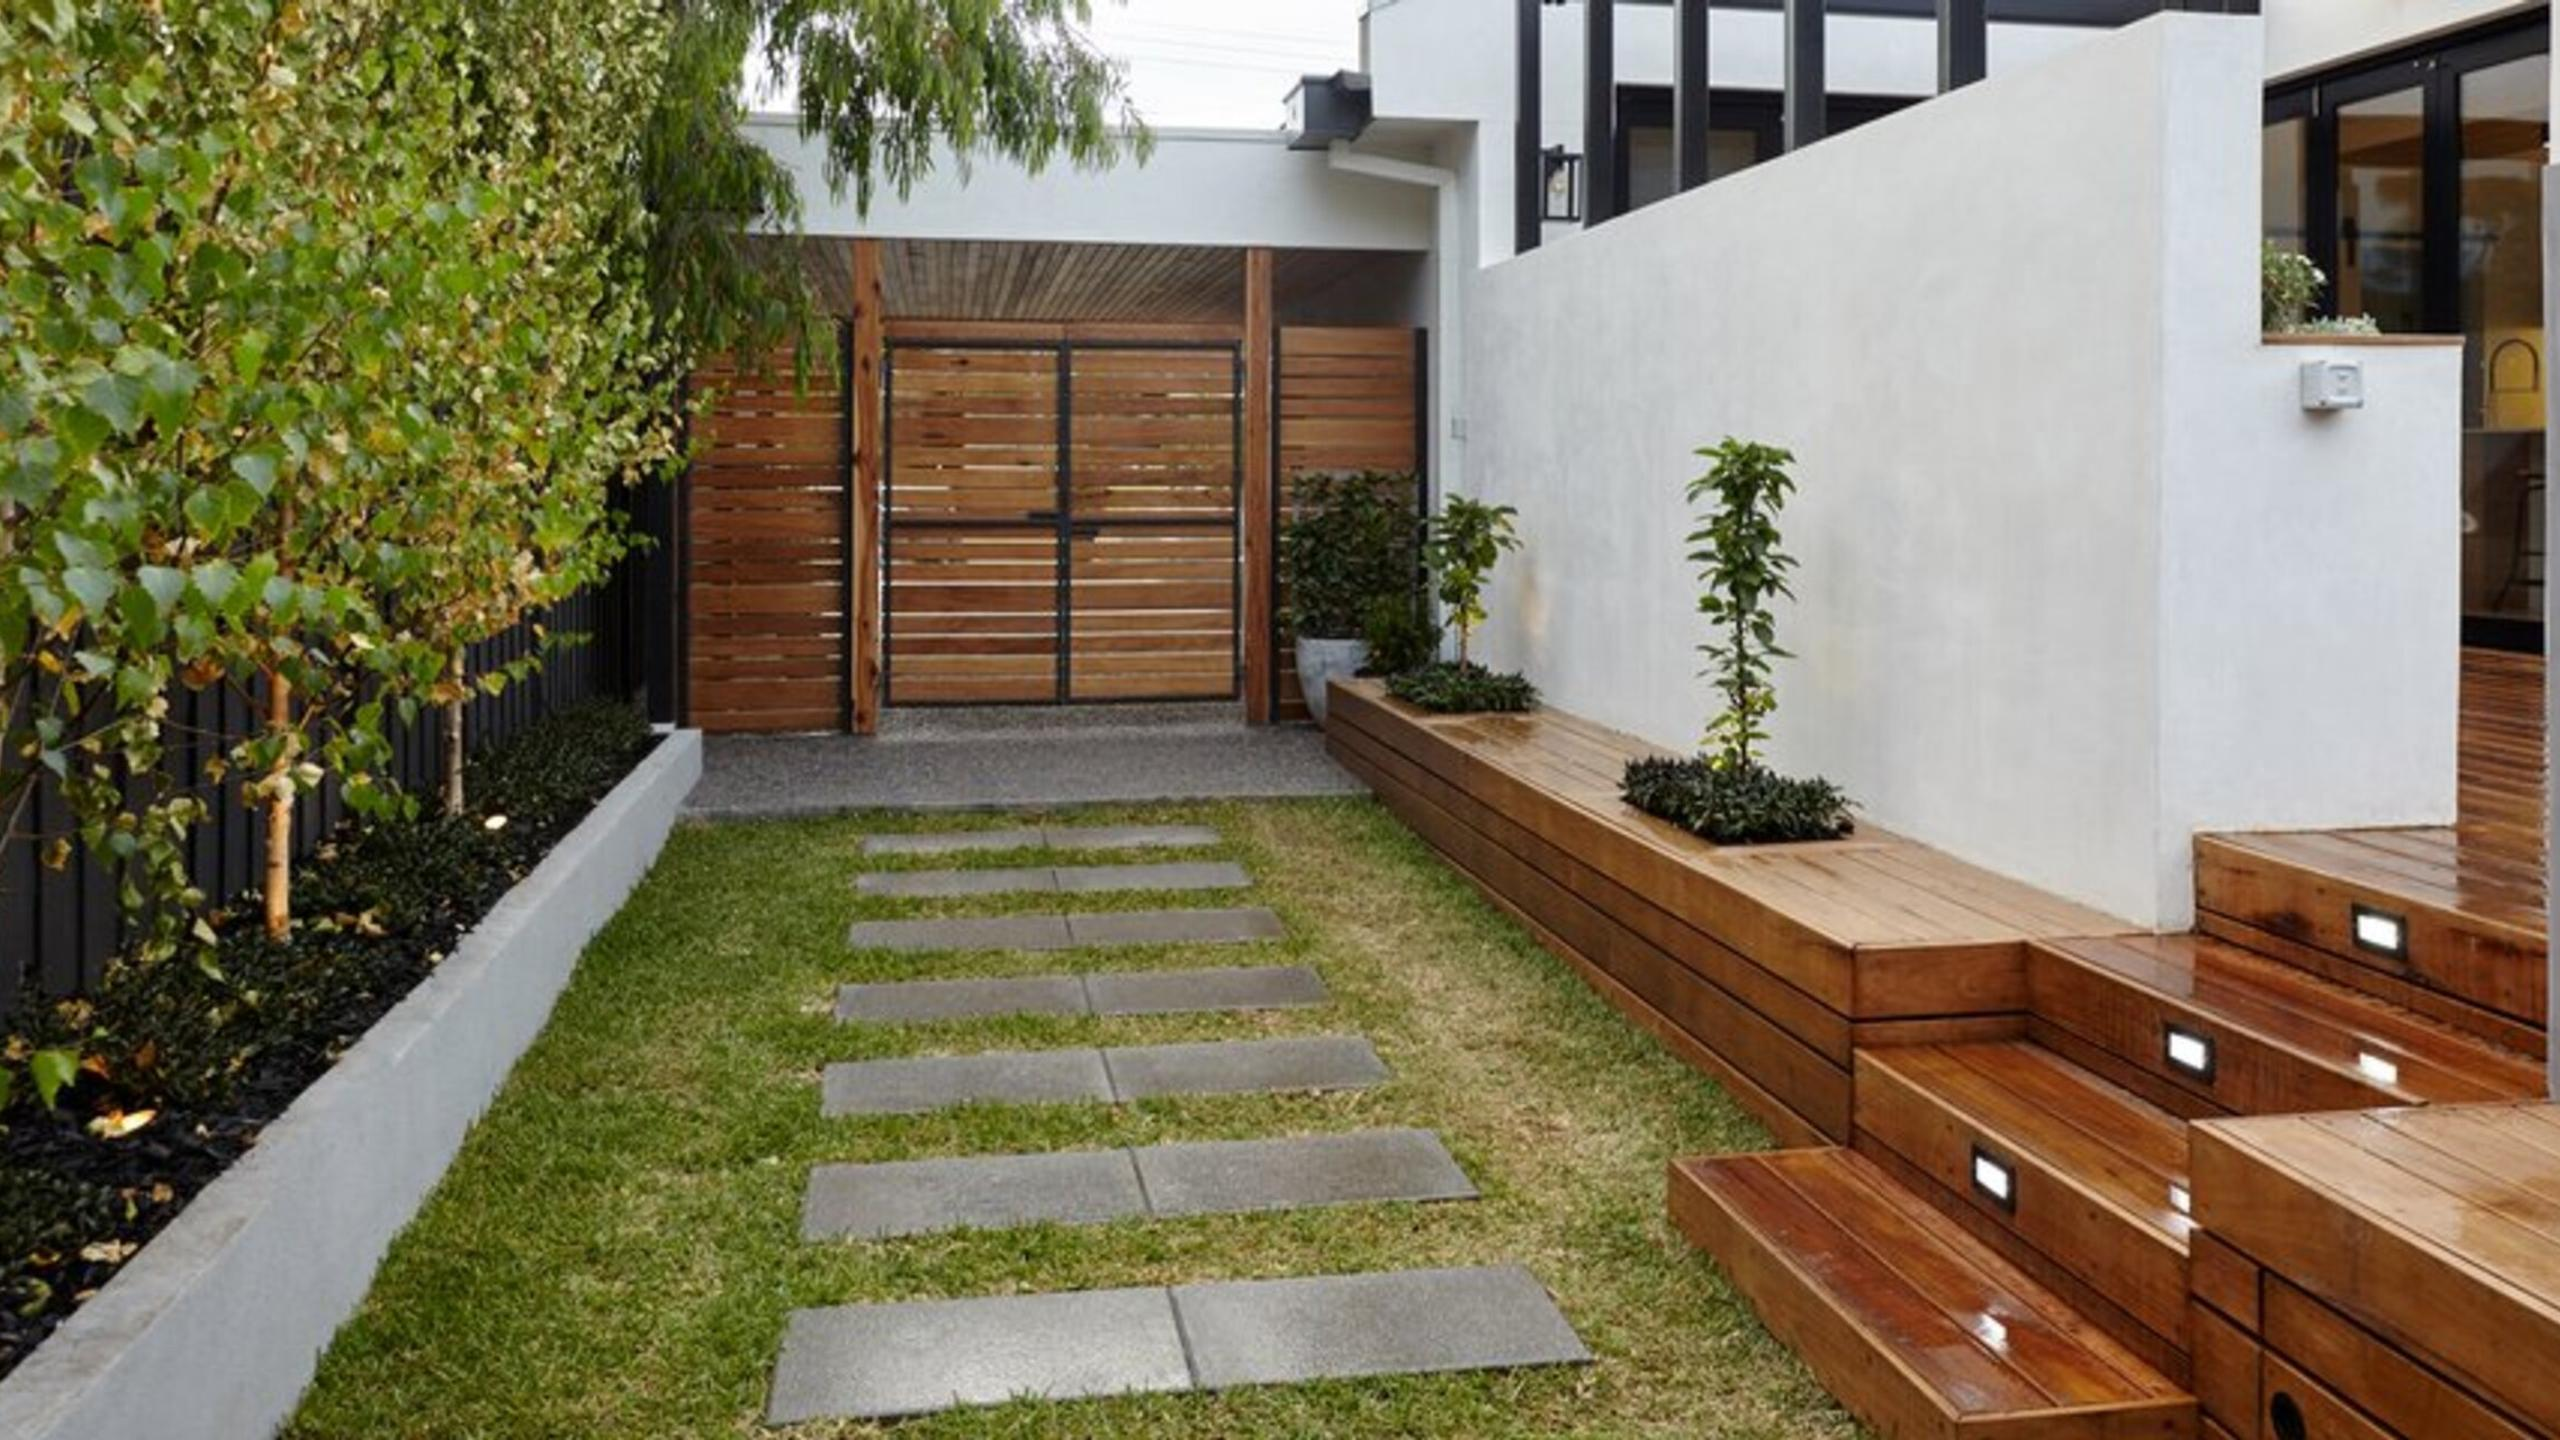 Garden area with glass, walls and trees.